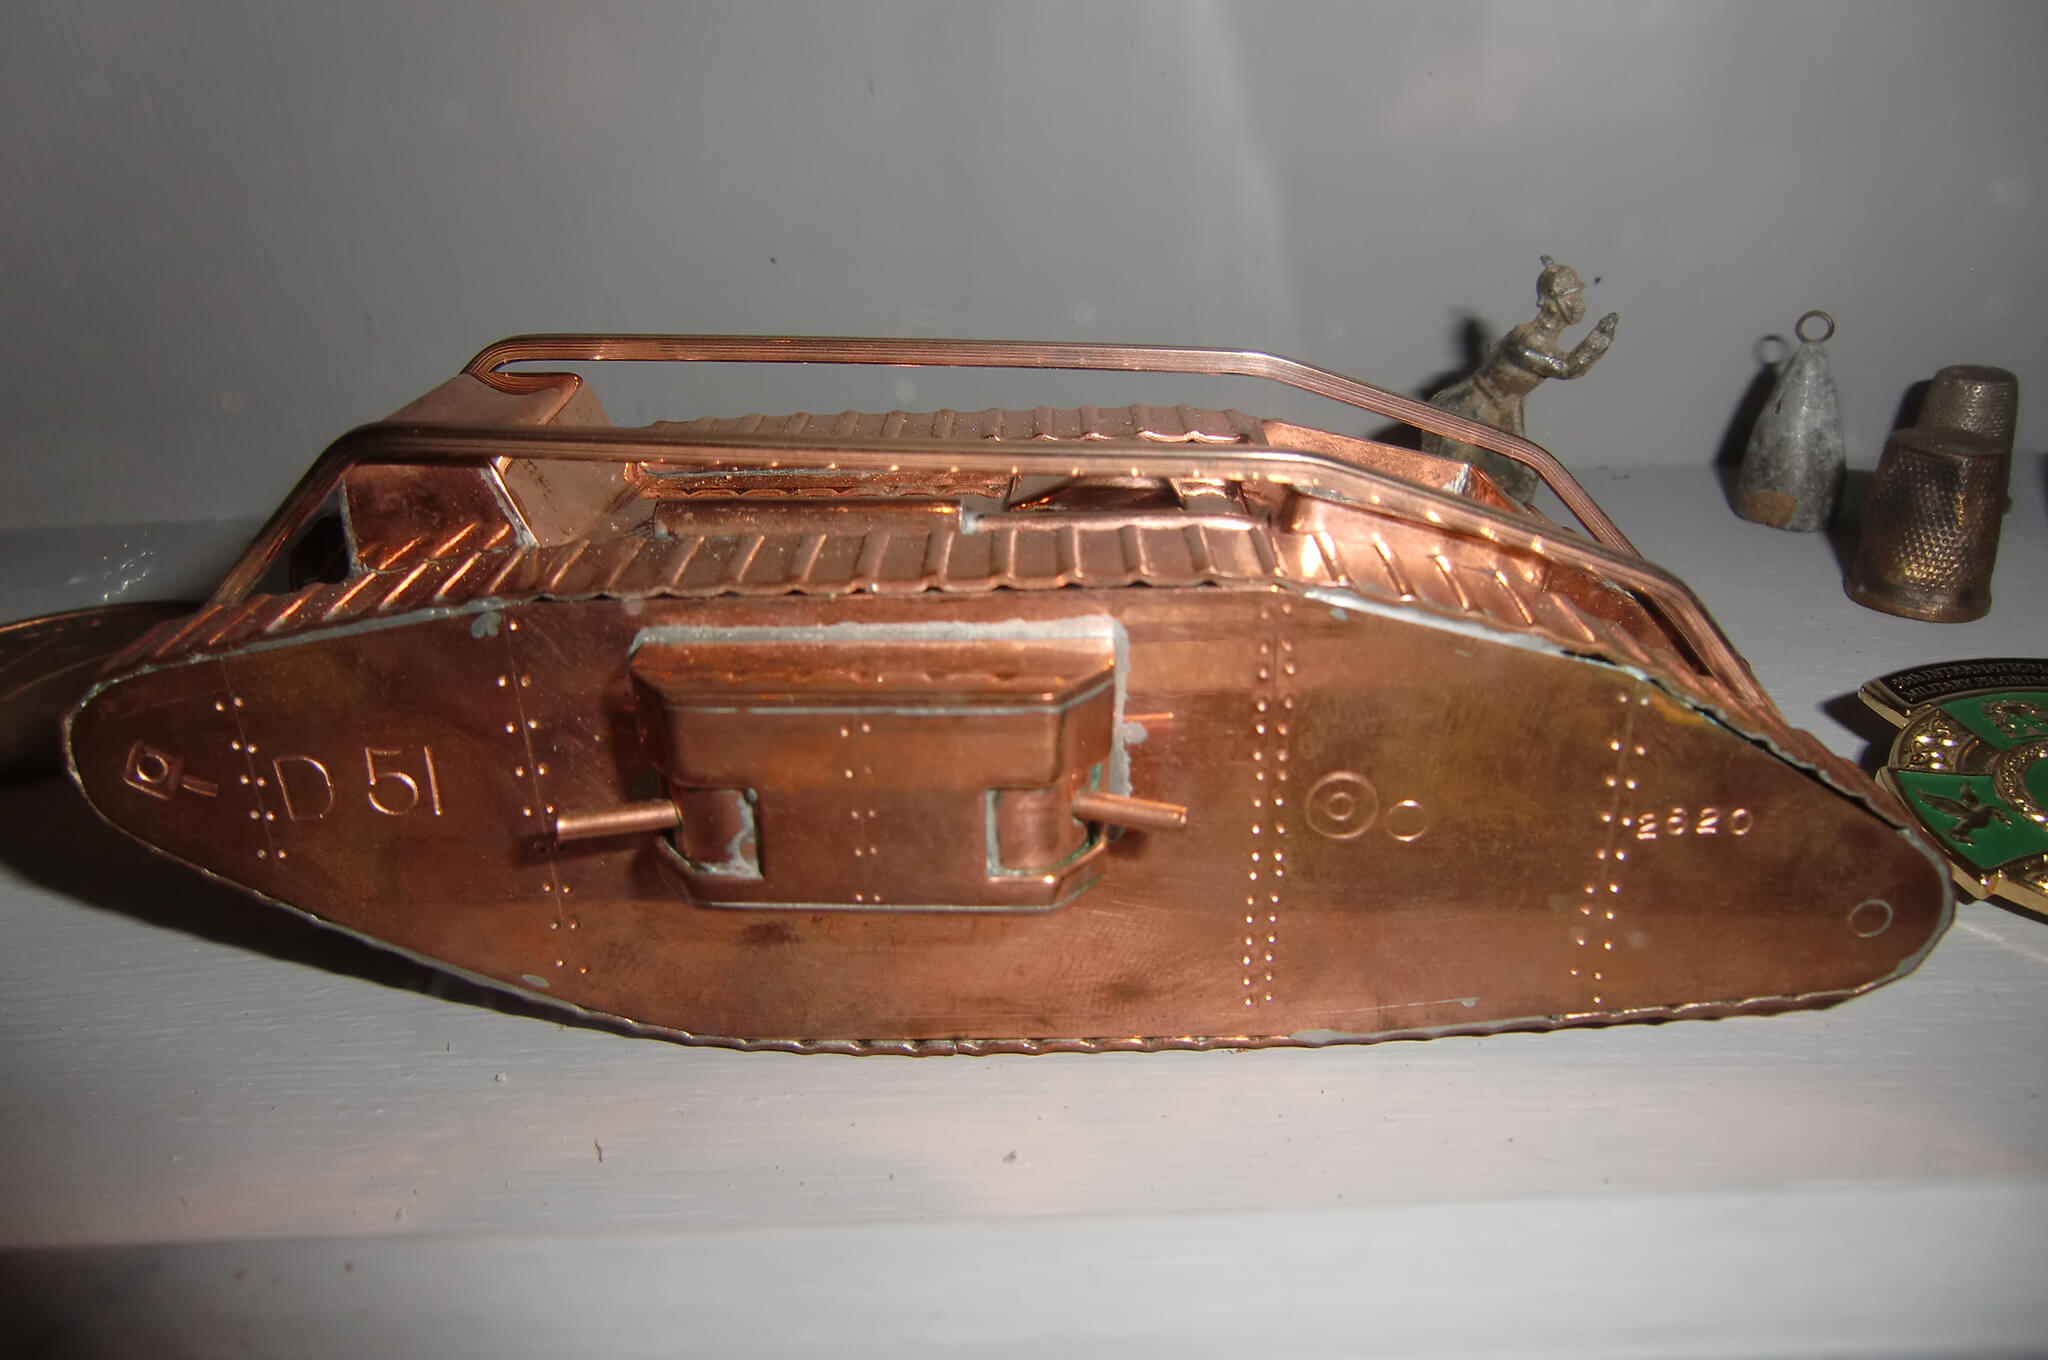 Photograph of model of Deborah WWWI tank in French museum in Cambrai.